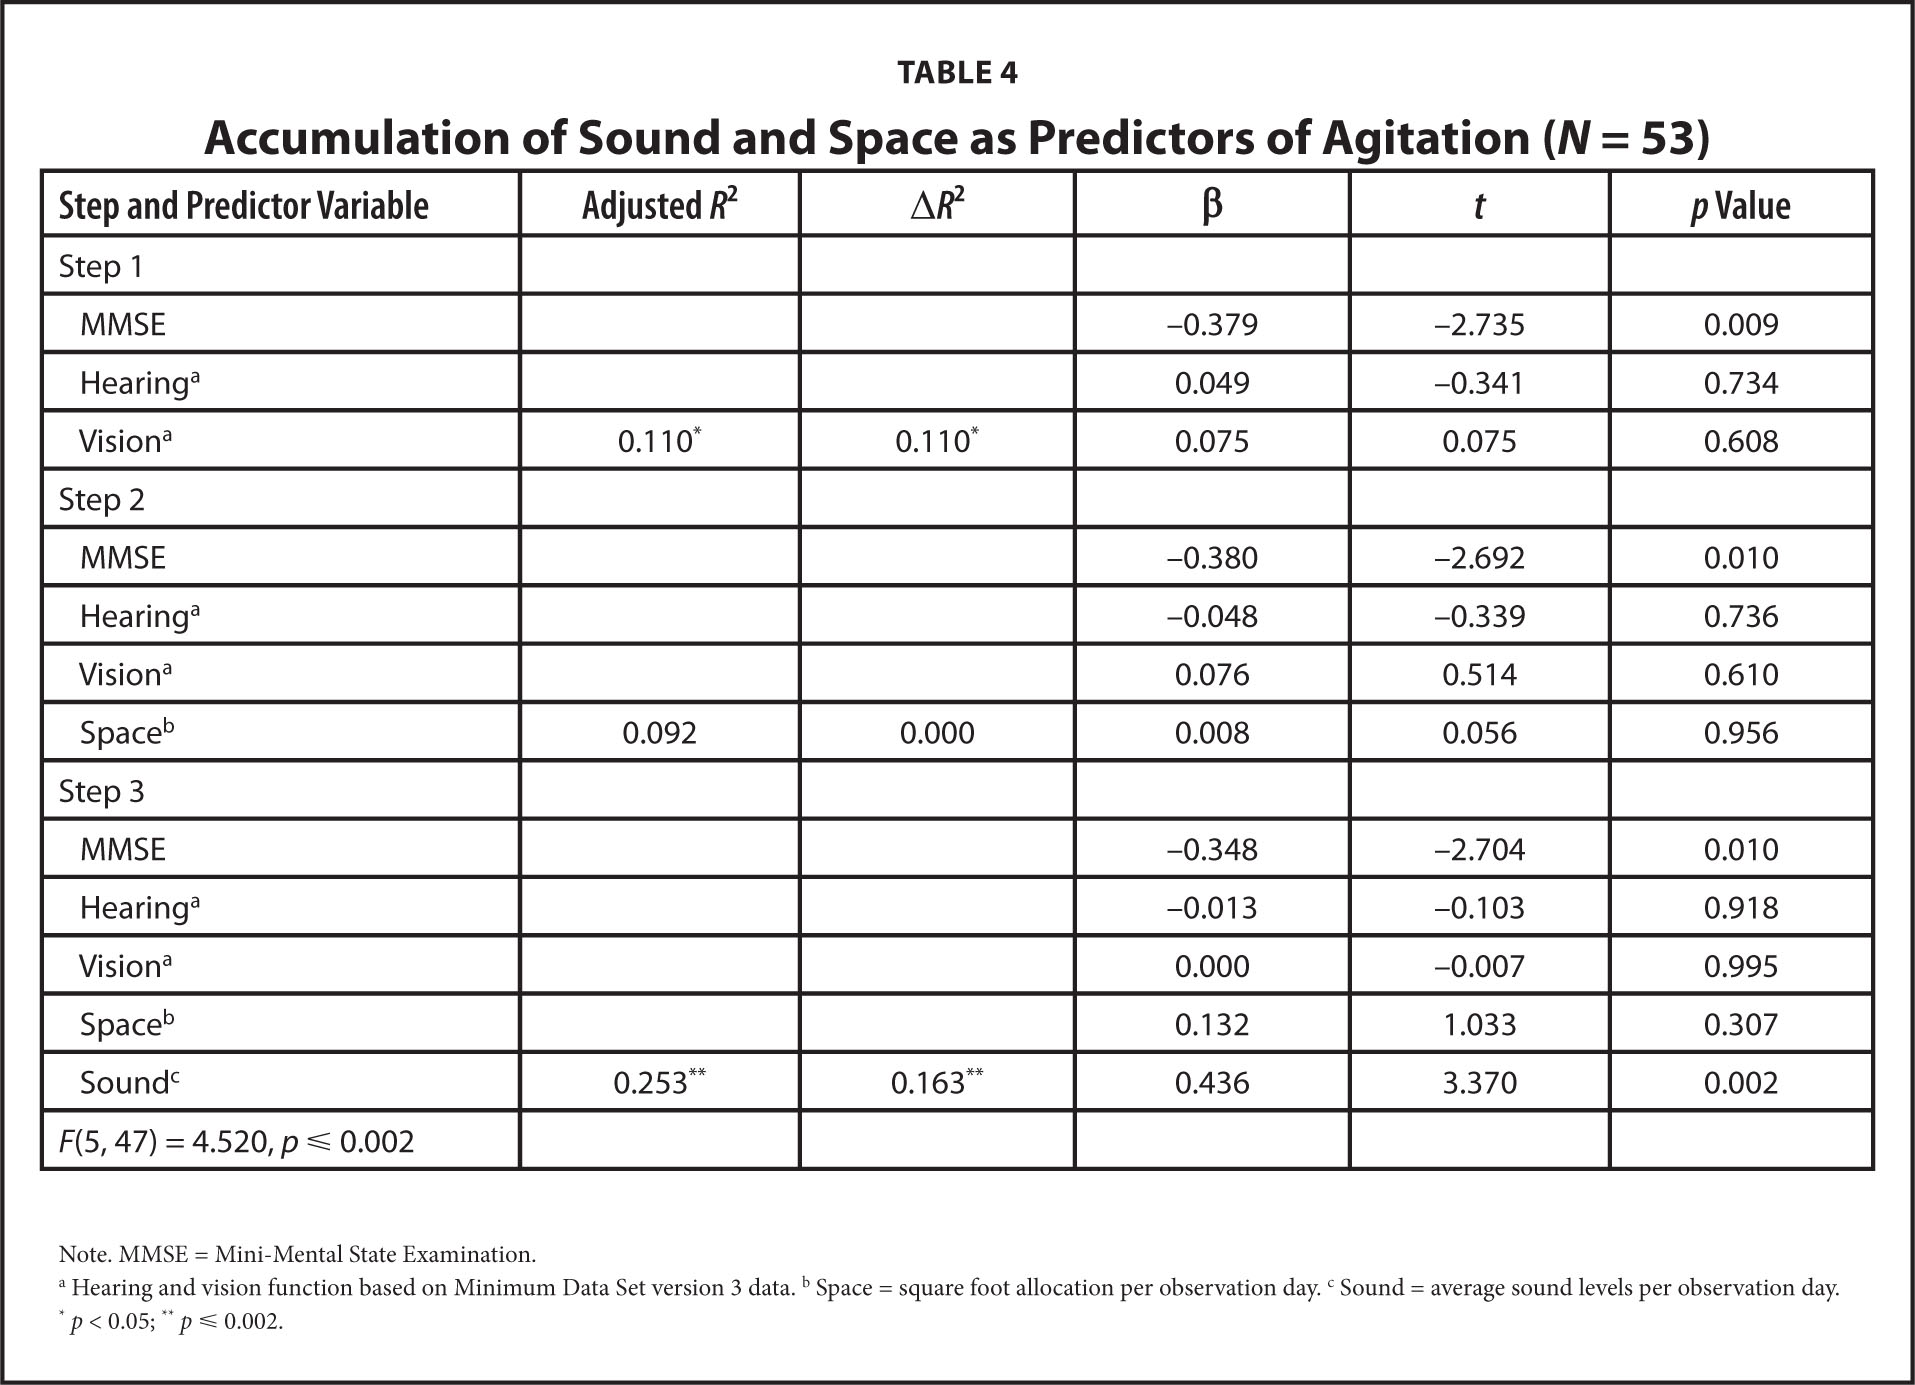 Accumulation of Sound and Space as Predictors of Agitation (N = 53)